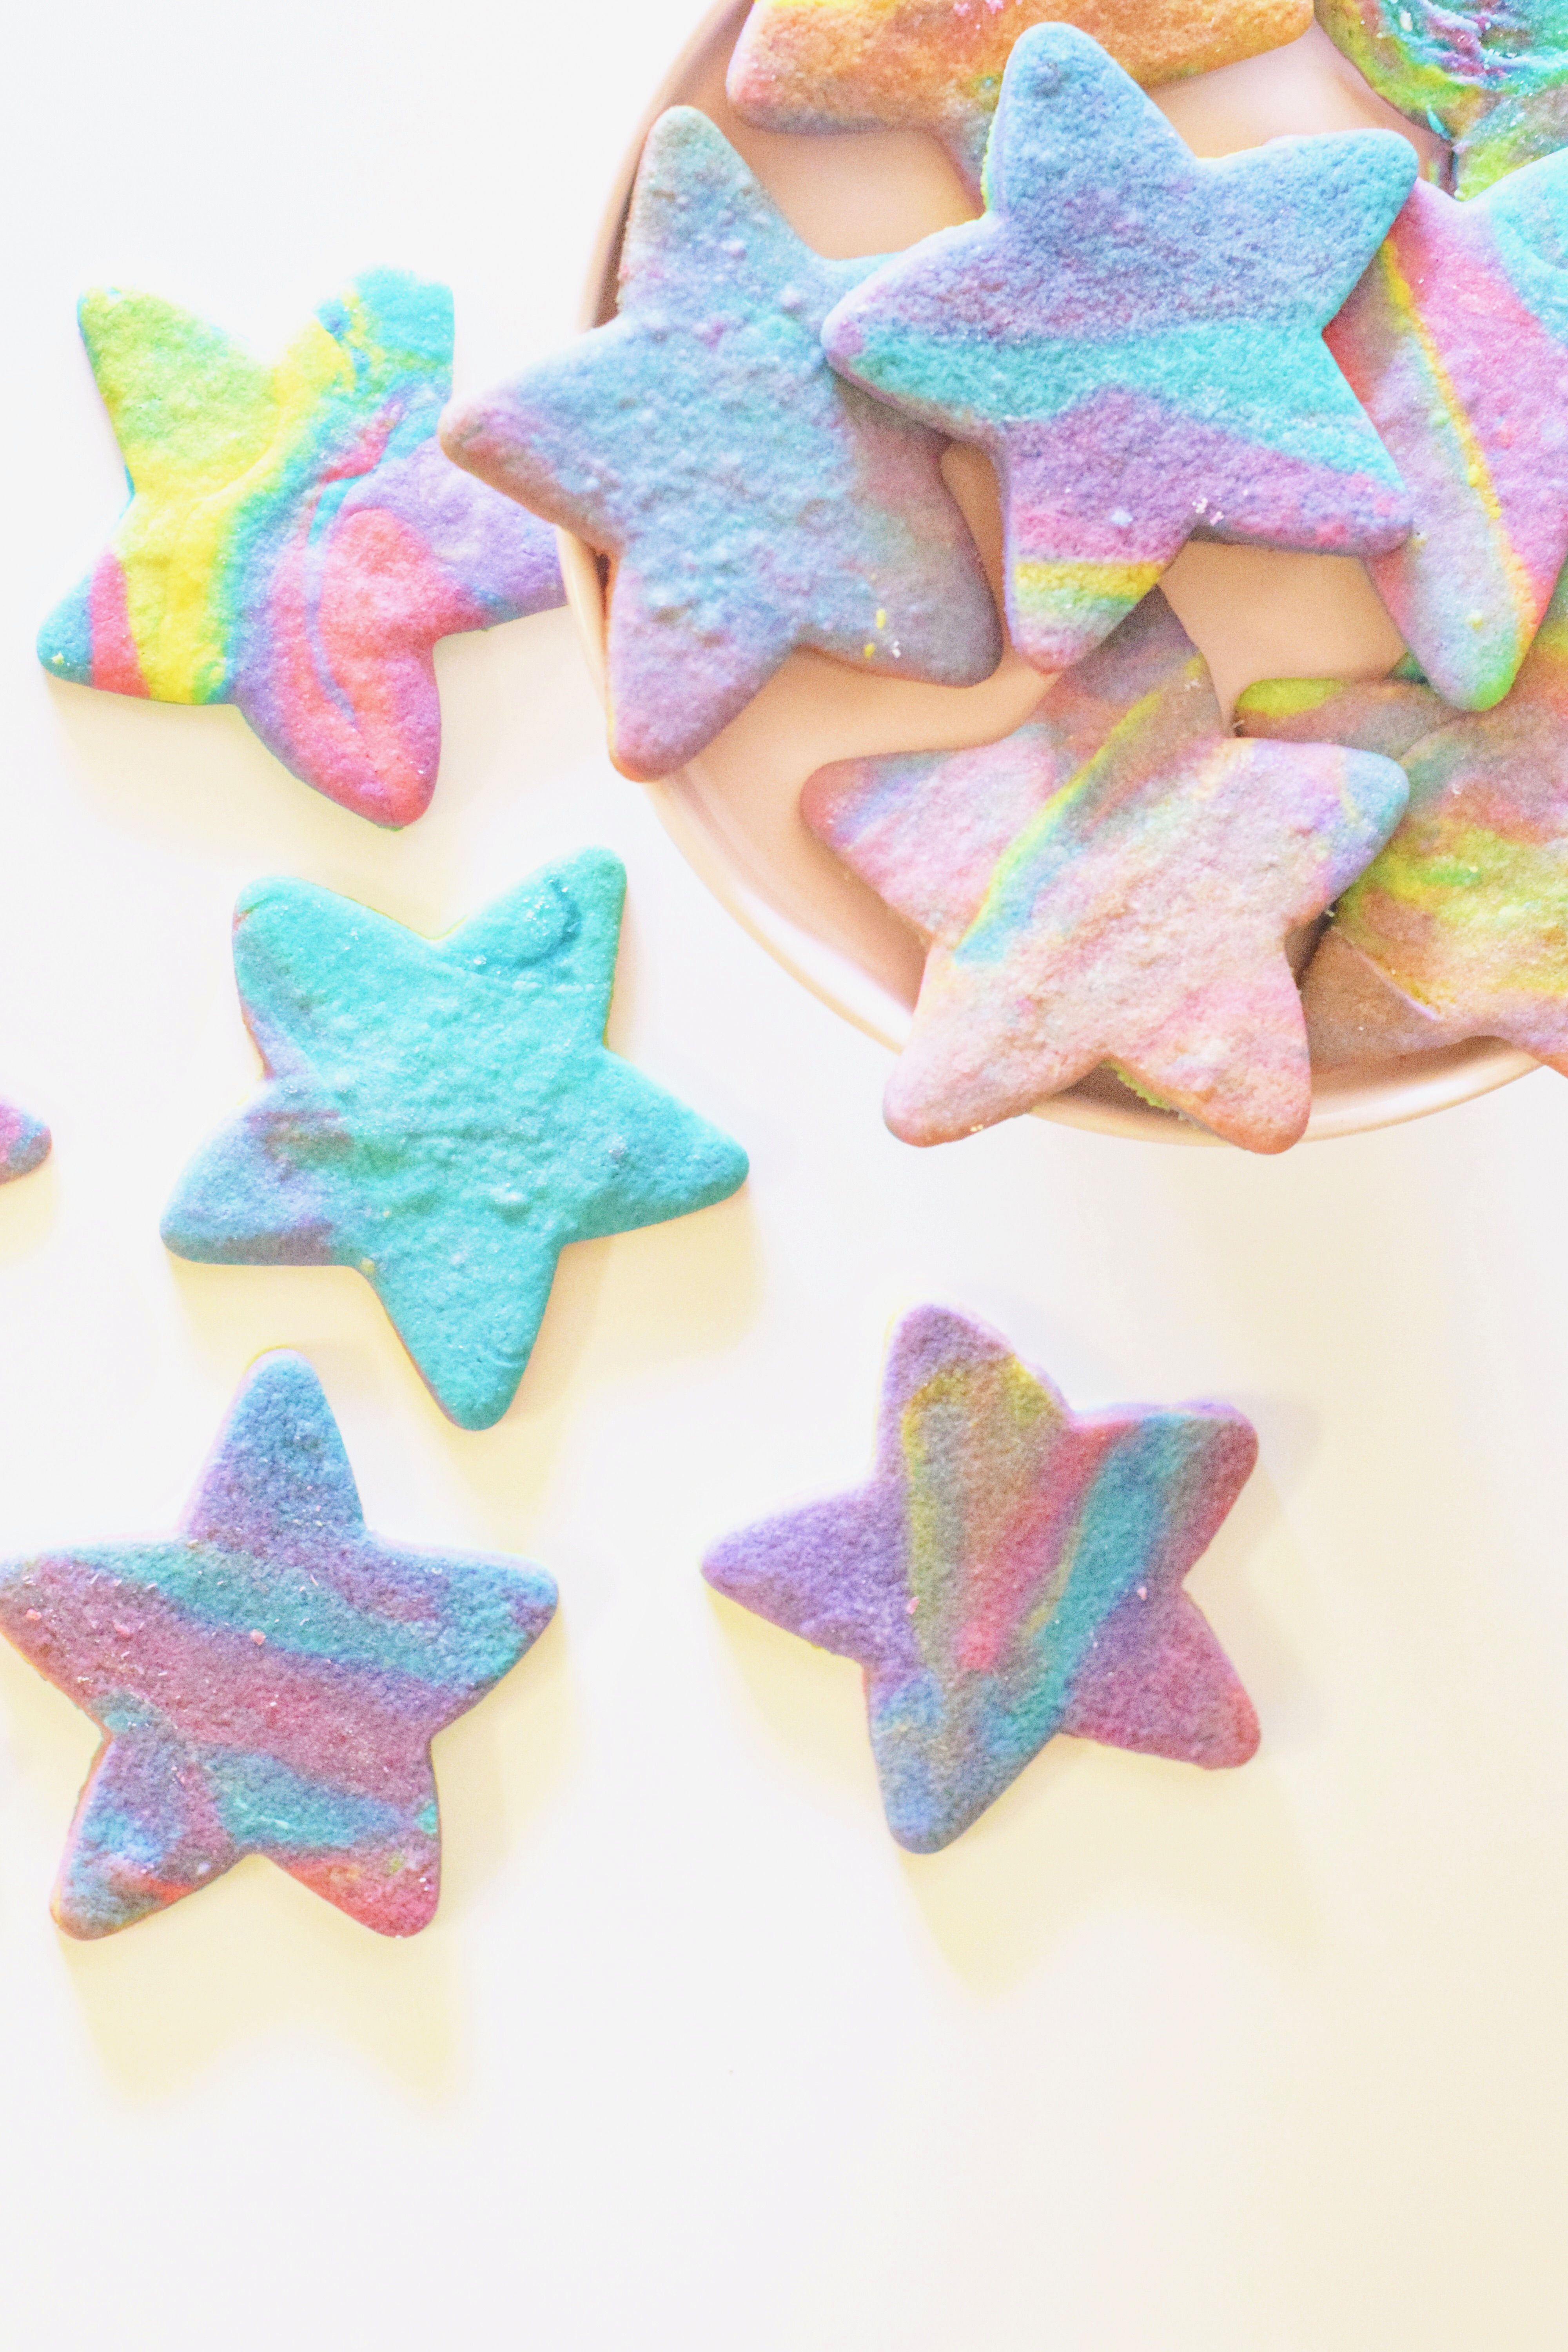 Northern Lights Sugar Cookies - Super-easy classic sugar cookies inspired by the beautiful Aurora Borealis, or Northern Lights, sky show!   Tie Dye Sugar Cookies - Best Ever Sugar Cookies - Easy Sugar Cookies - Northern Lights Cookies